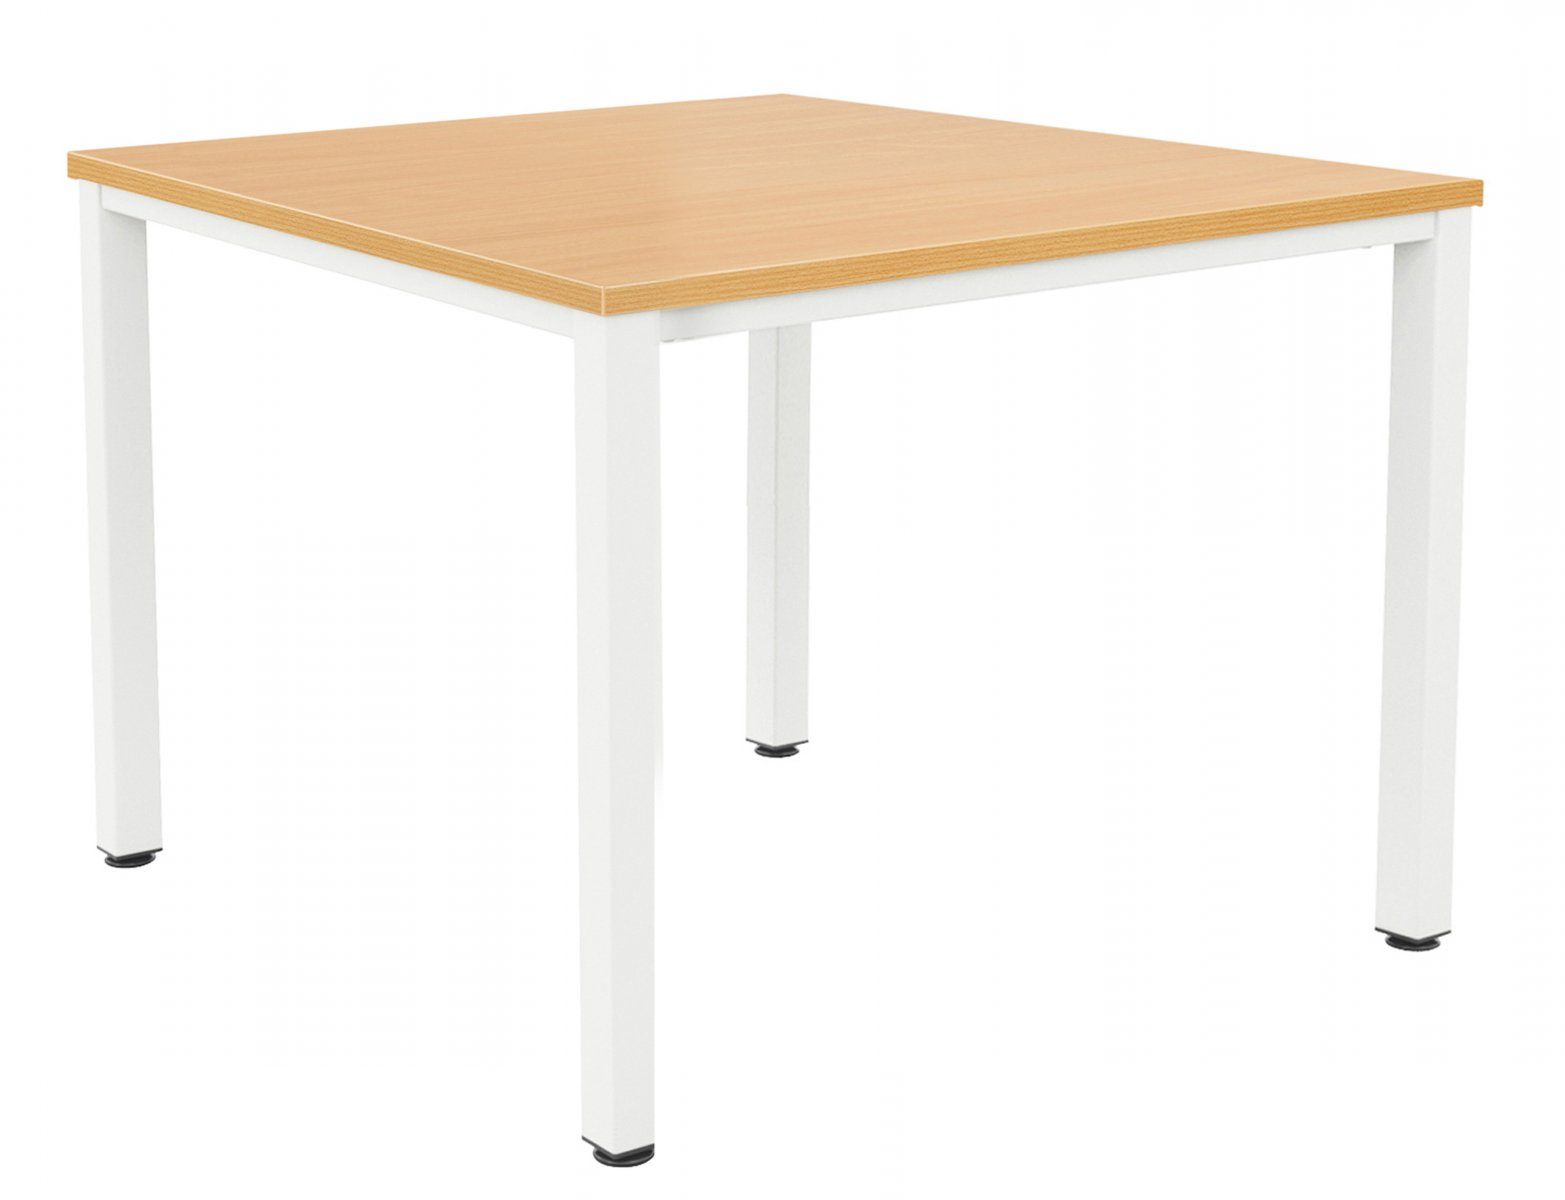 Fraction Infinity 140 x 140 Meeting Table - Beech with White Legs